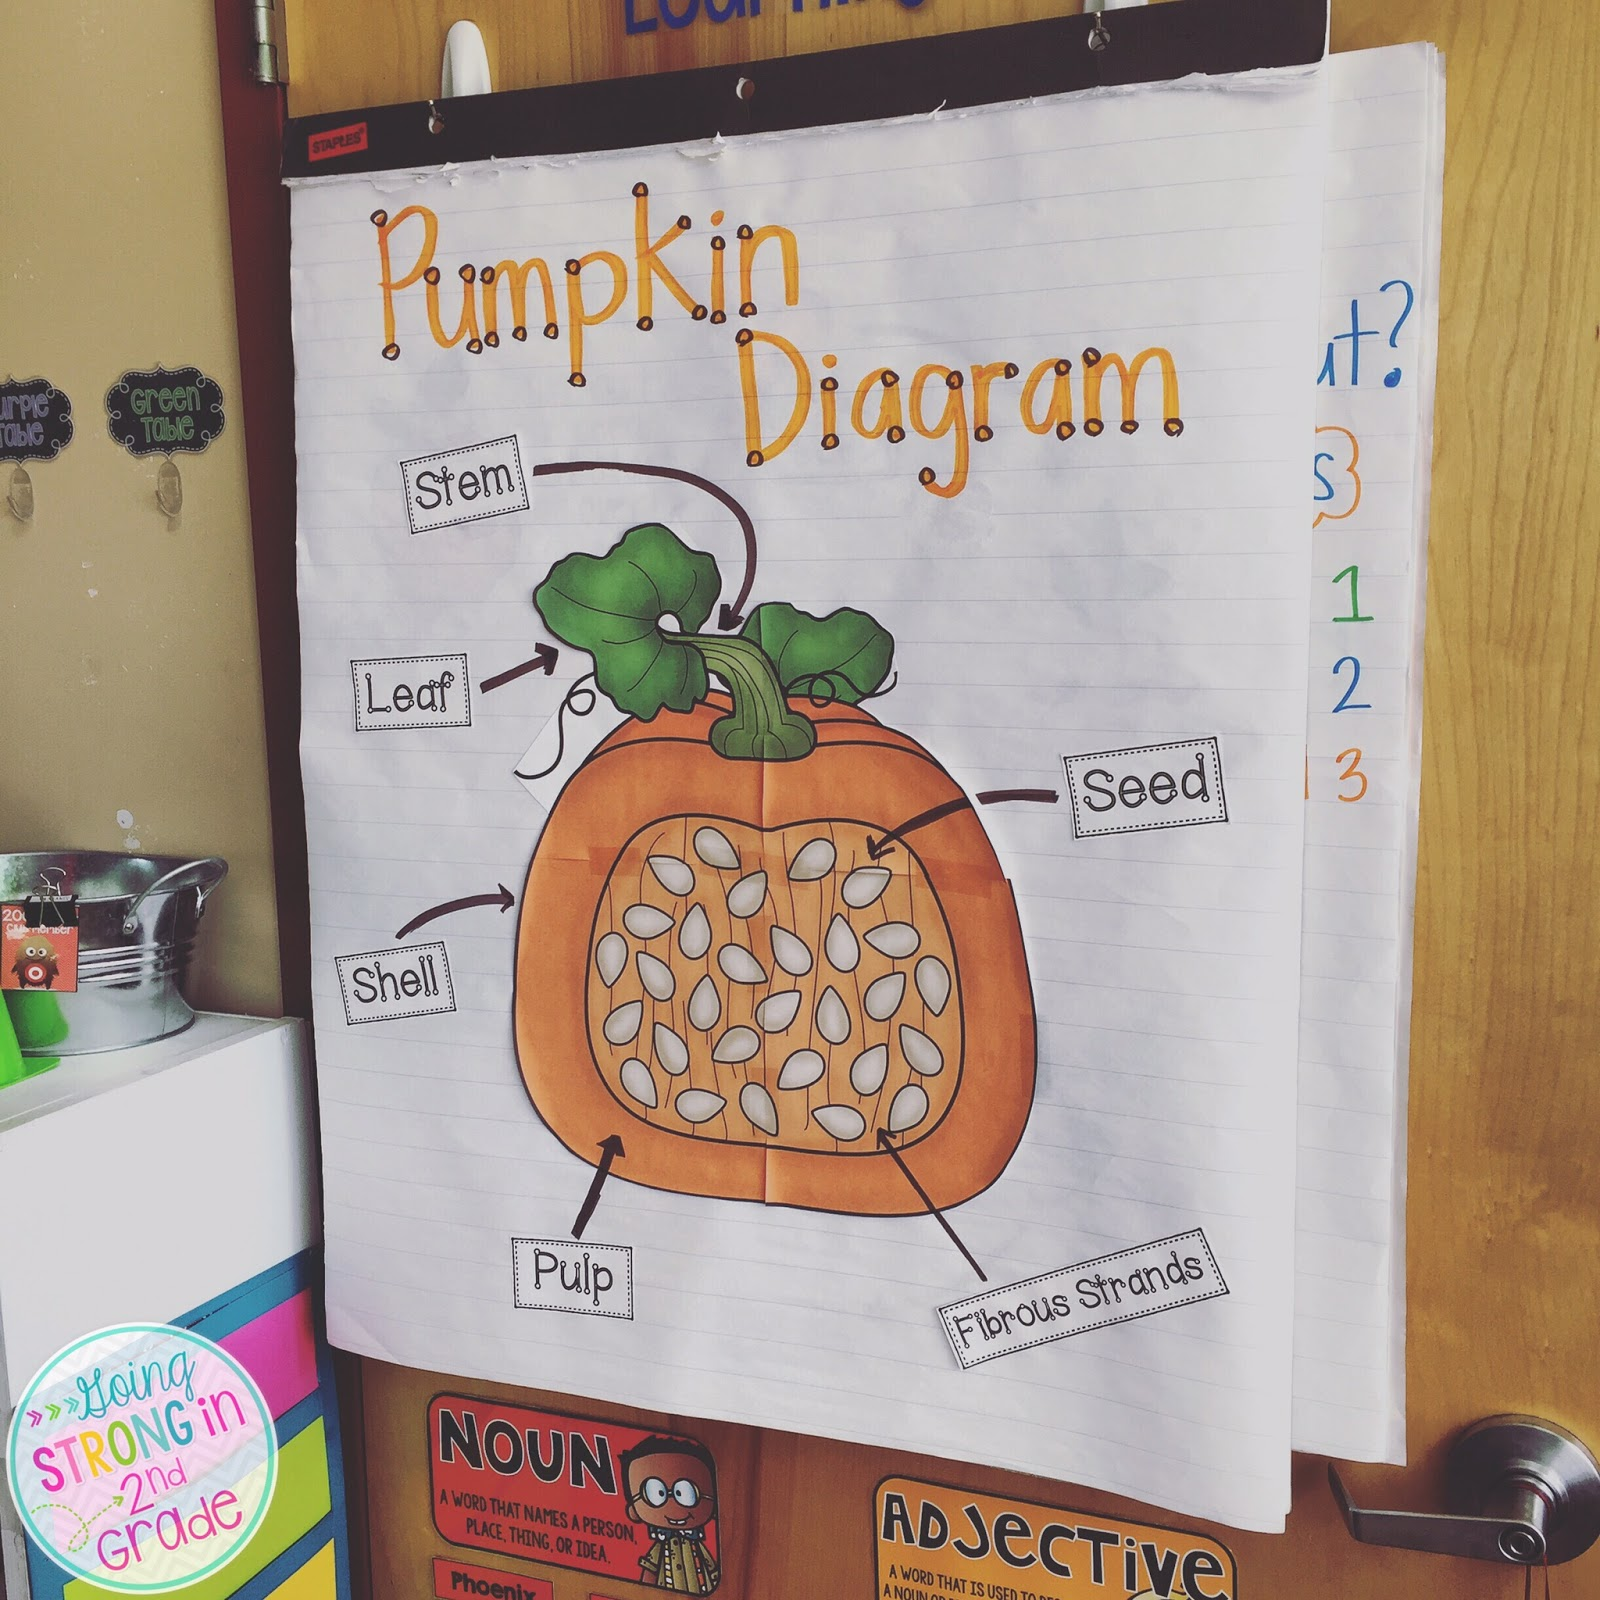 Parts Of A Pumpkin Diagram 4 Ohm Subwoofer Wiring Going Strong In 2nd Grade Week